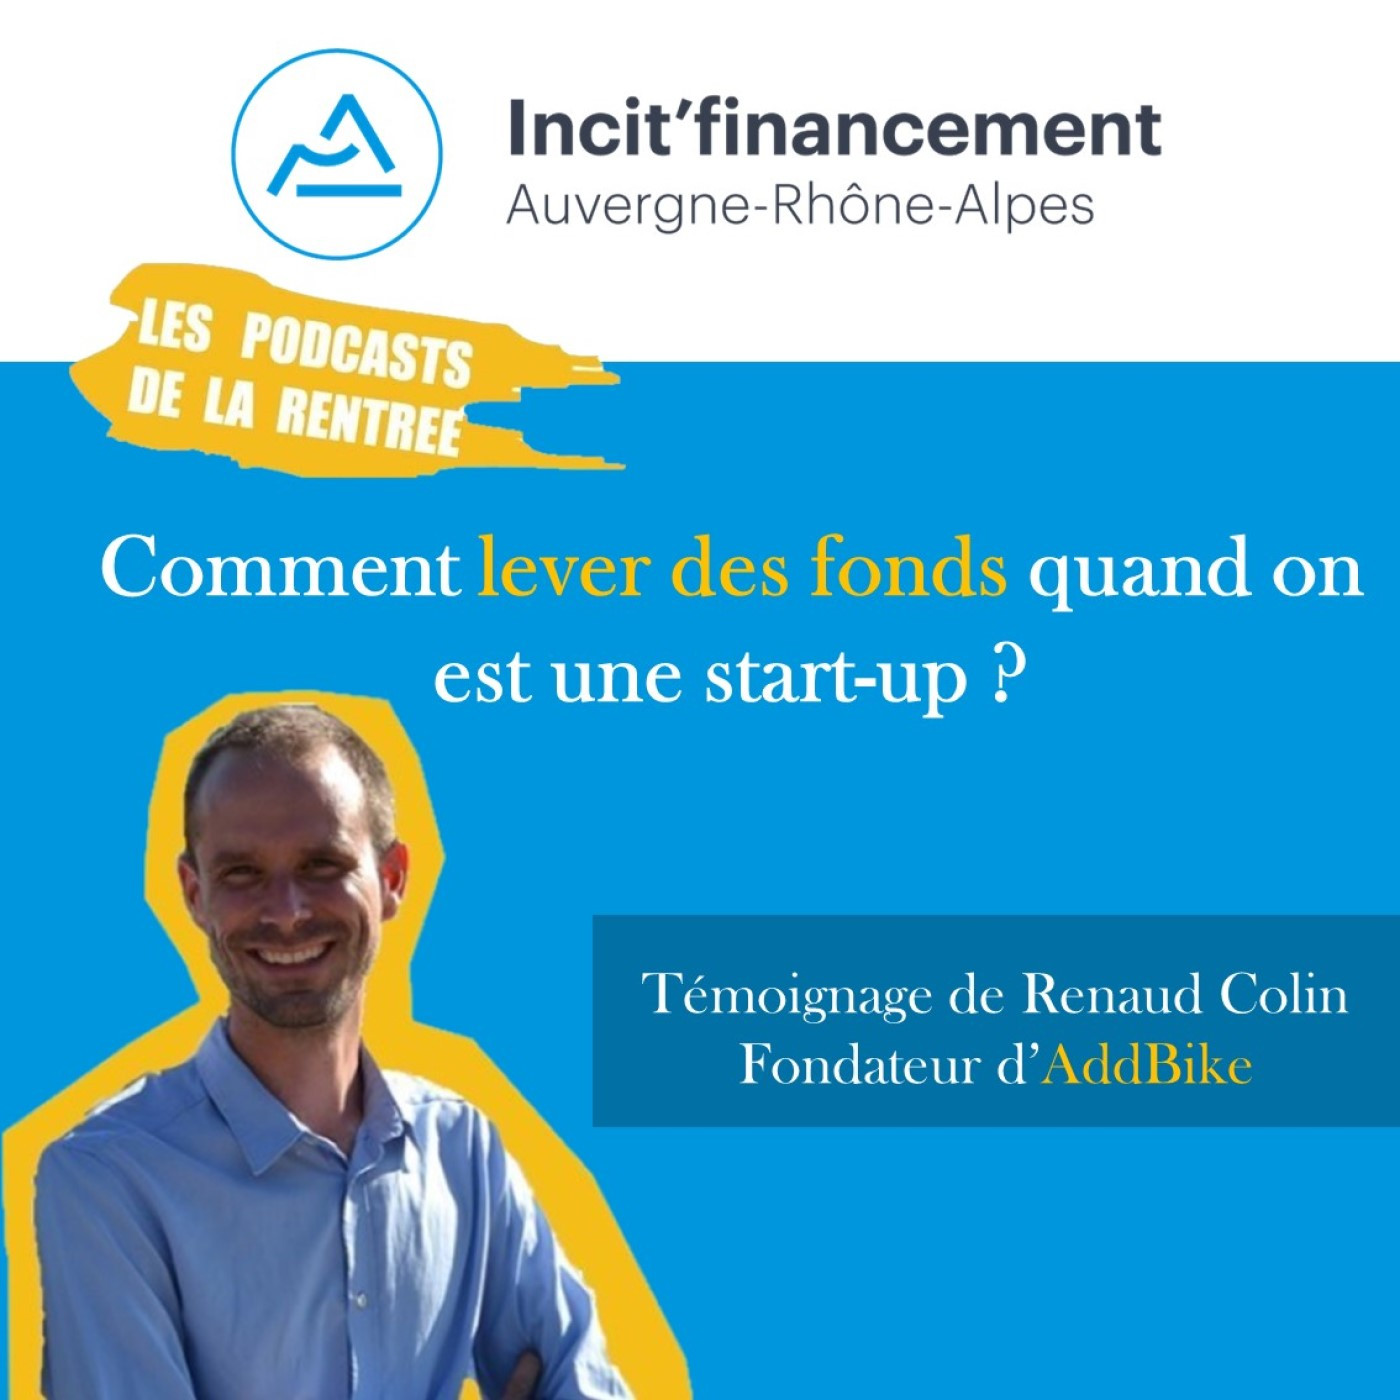 Episode 1 - Comment lever des fonds - Renaud Colin (AddBike)